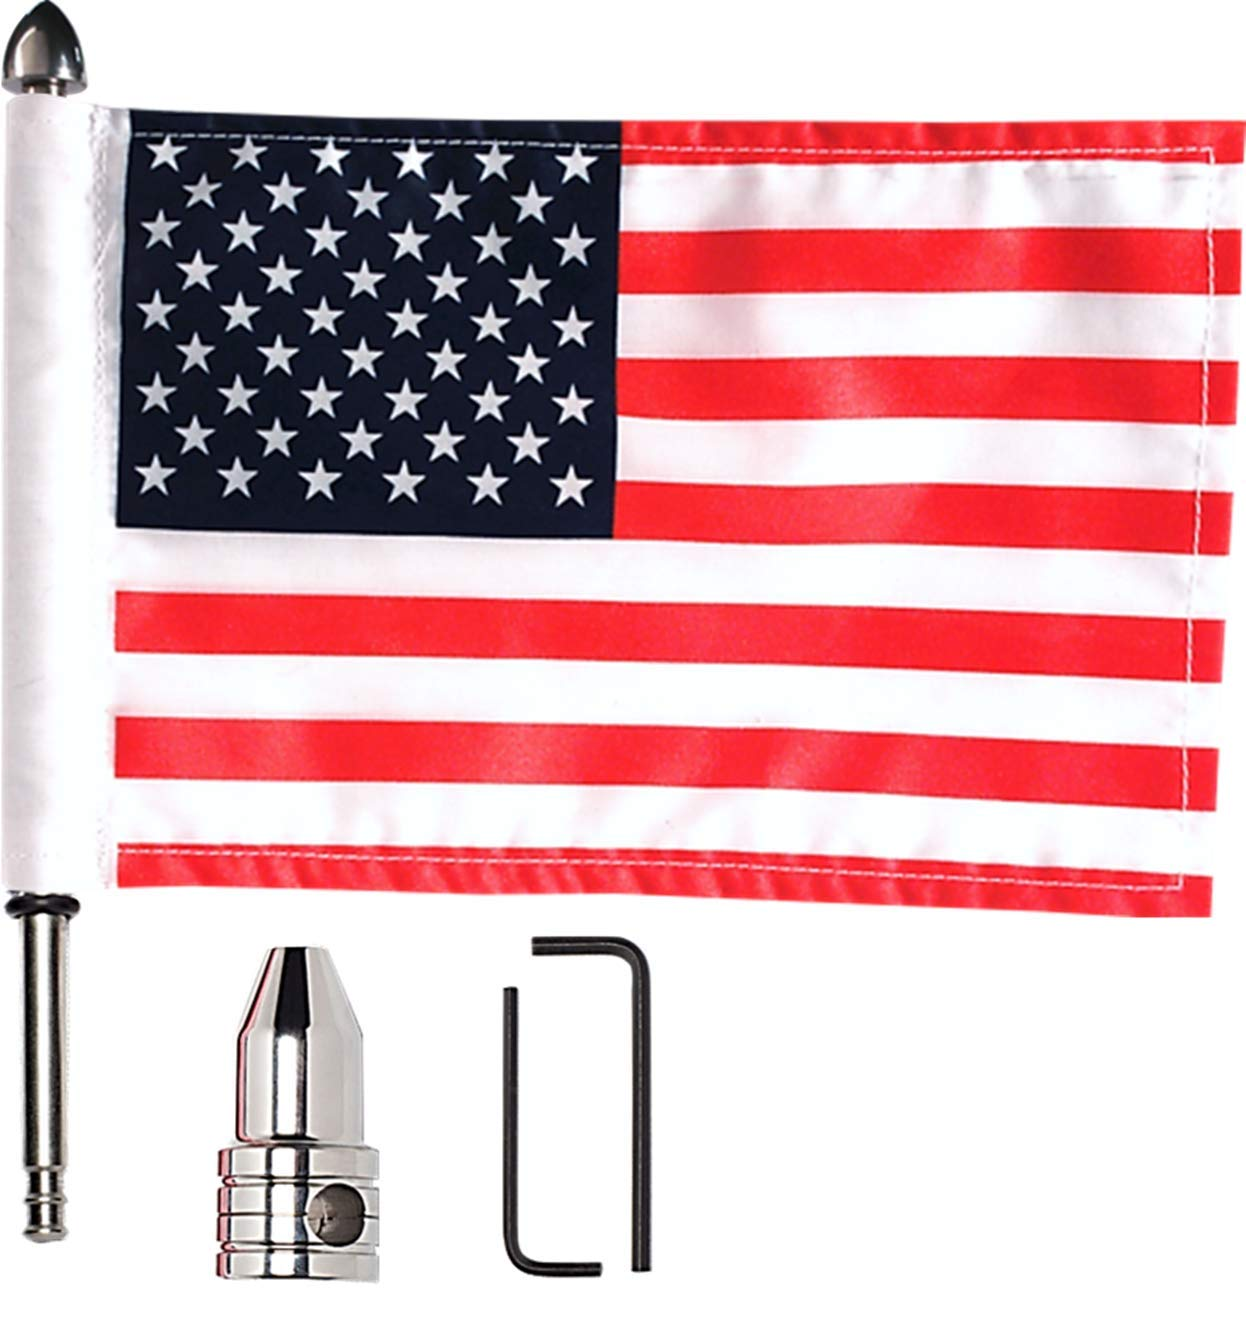 Luggage Rack Vertical Pole Usa Flag For Harley Electra Touring Street Road Glide Less Expensive Side Mirrors & Accessories